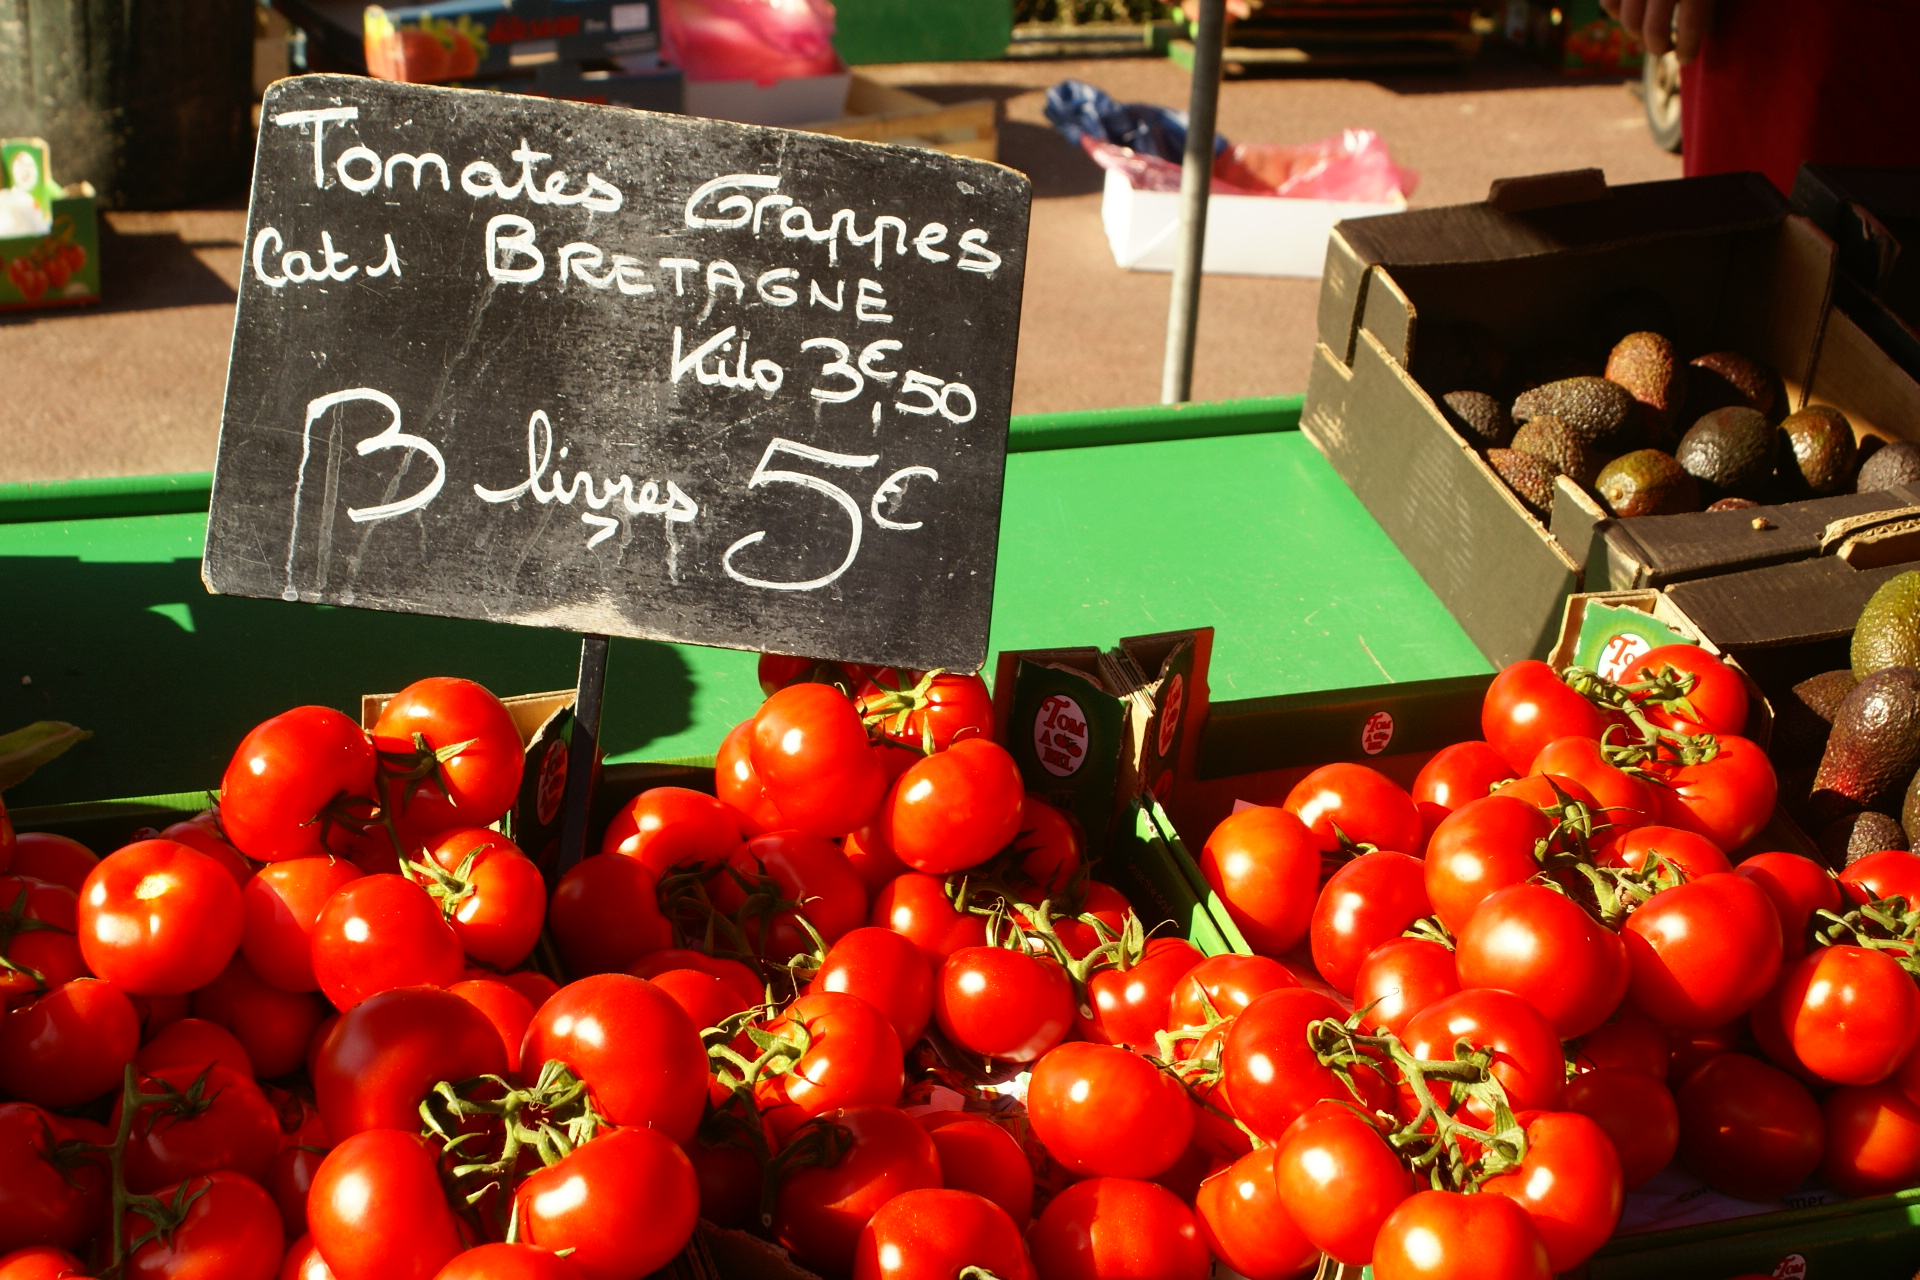 Tomatoes dold by the livre (pound) at a Normandy market